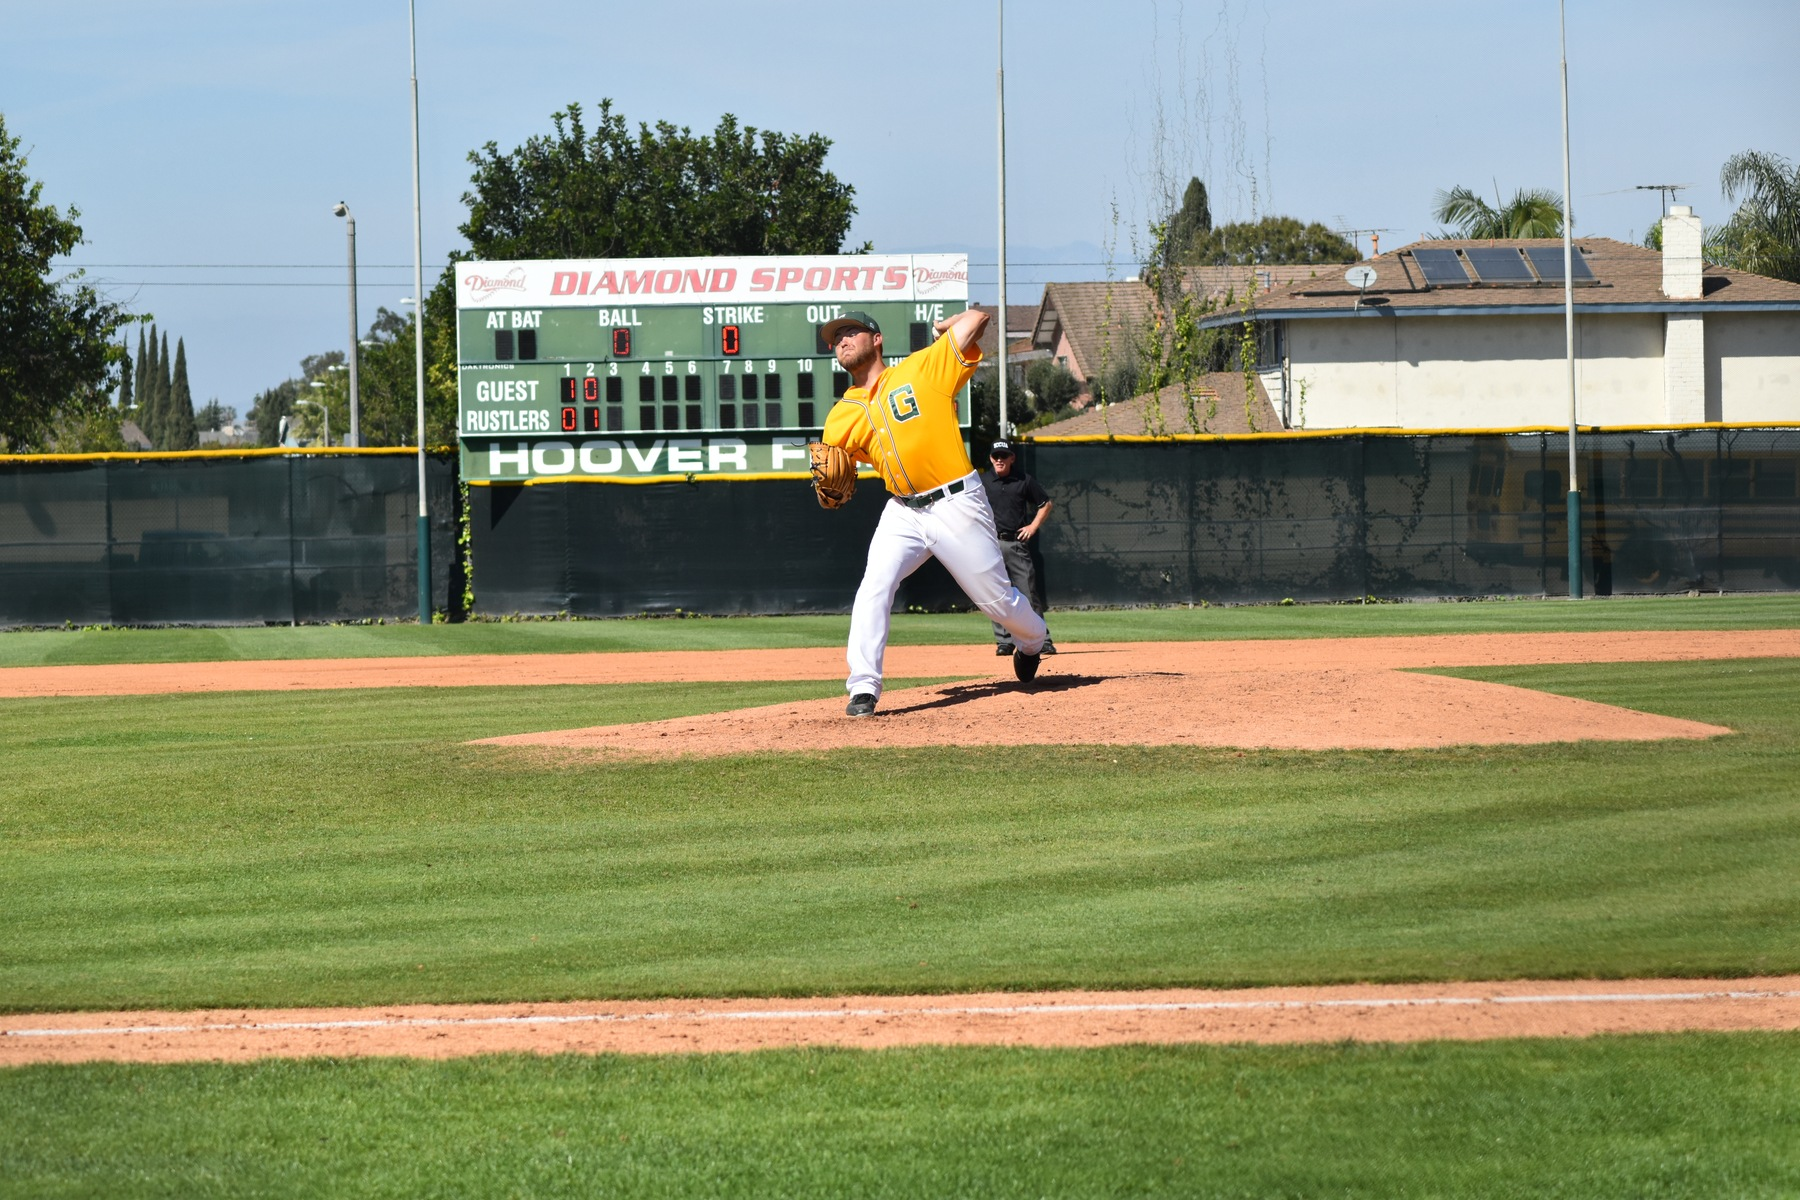 Baseball: Big Inning Leads to Big Win